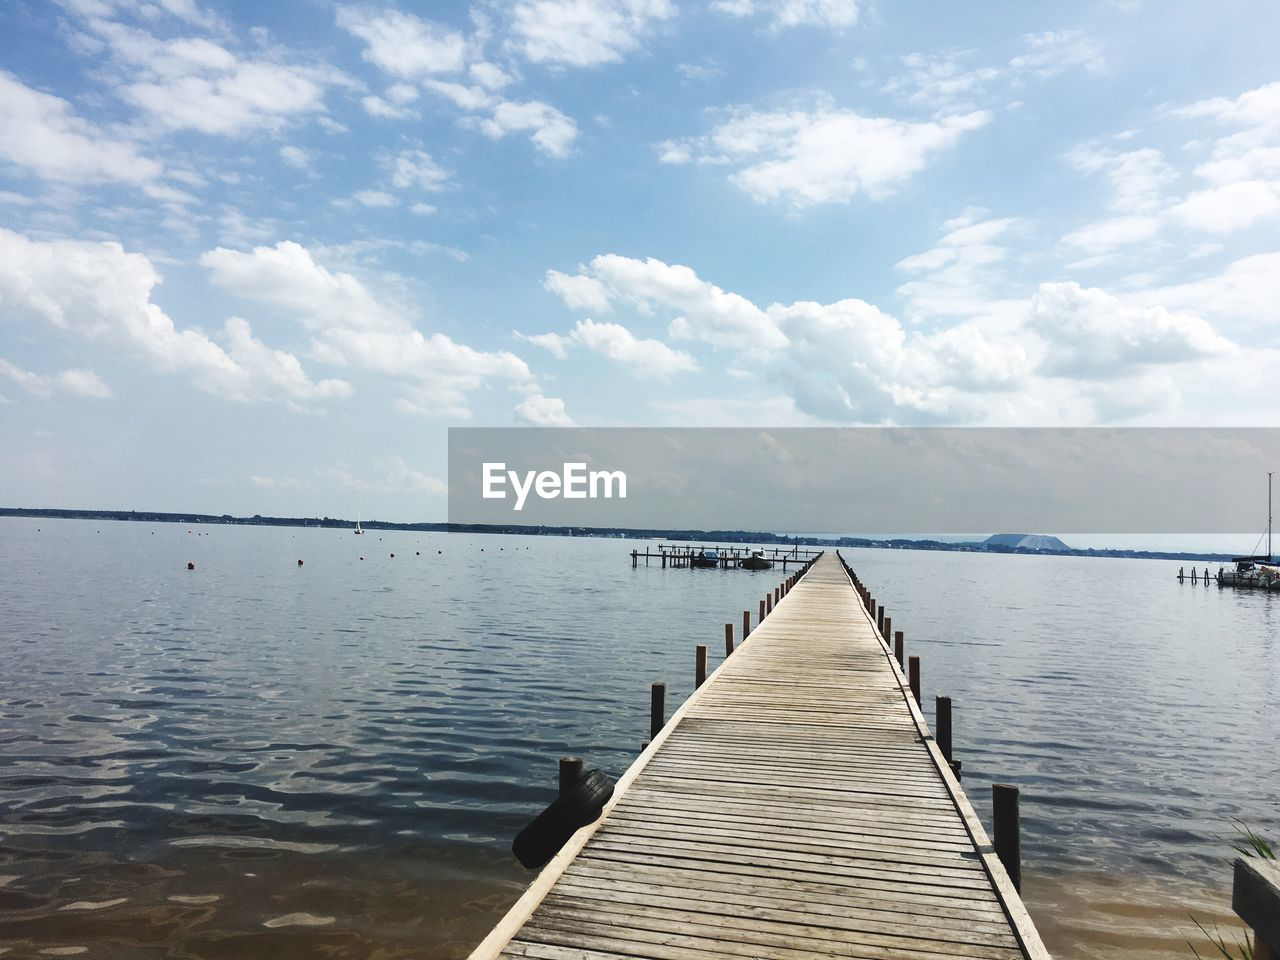 water, sky, cloud - sky, tranquility, tranquil scene, beauty in nature, wood - material, pier, scenics - nature, the way forward, direction, no people, jetty, nature, lake, day, idyllic, built structure, diminishing perspective, wood paneling, outdoors, wood, long